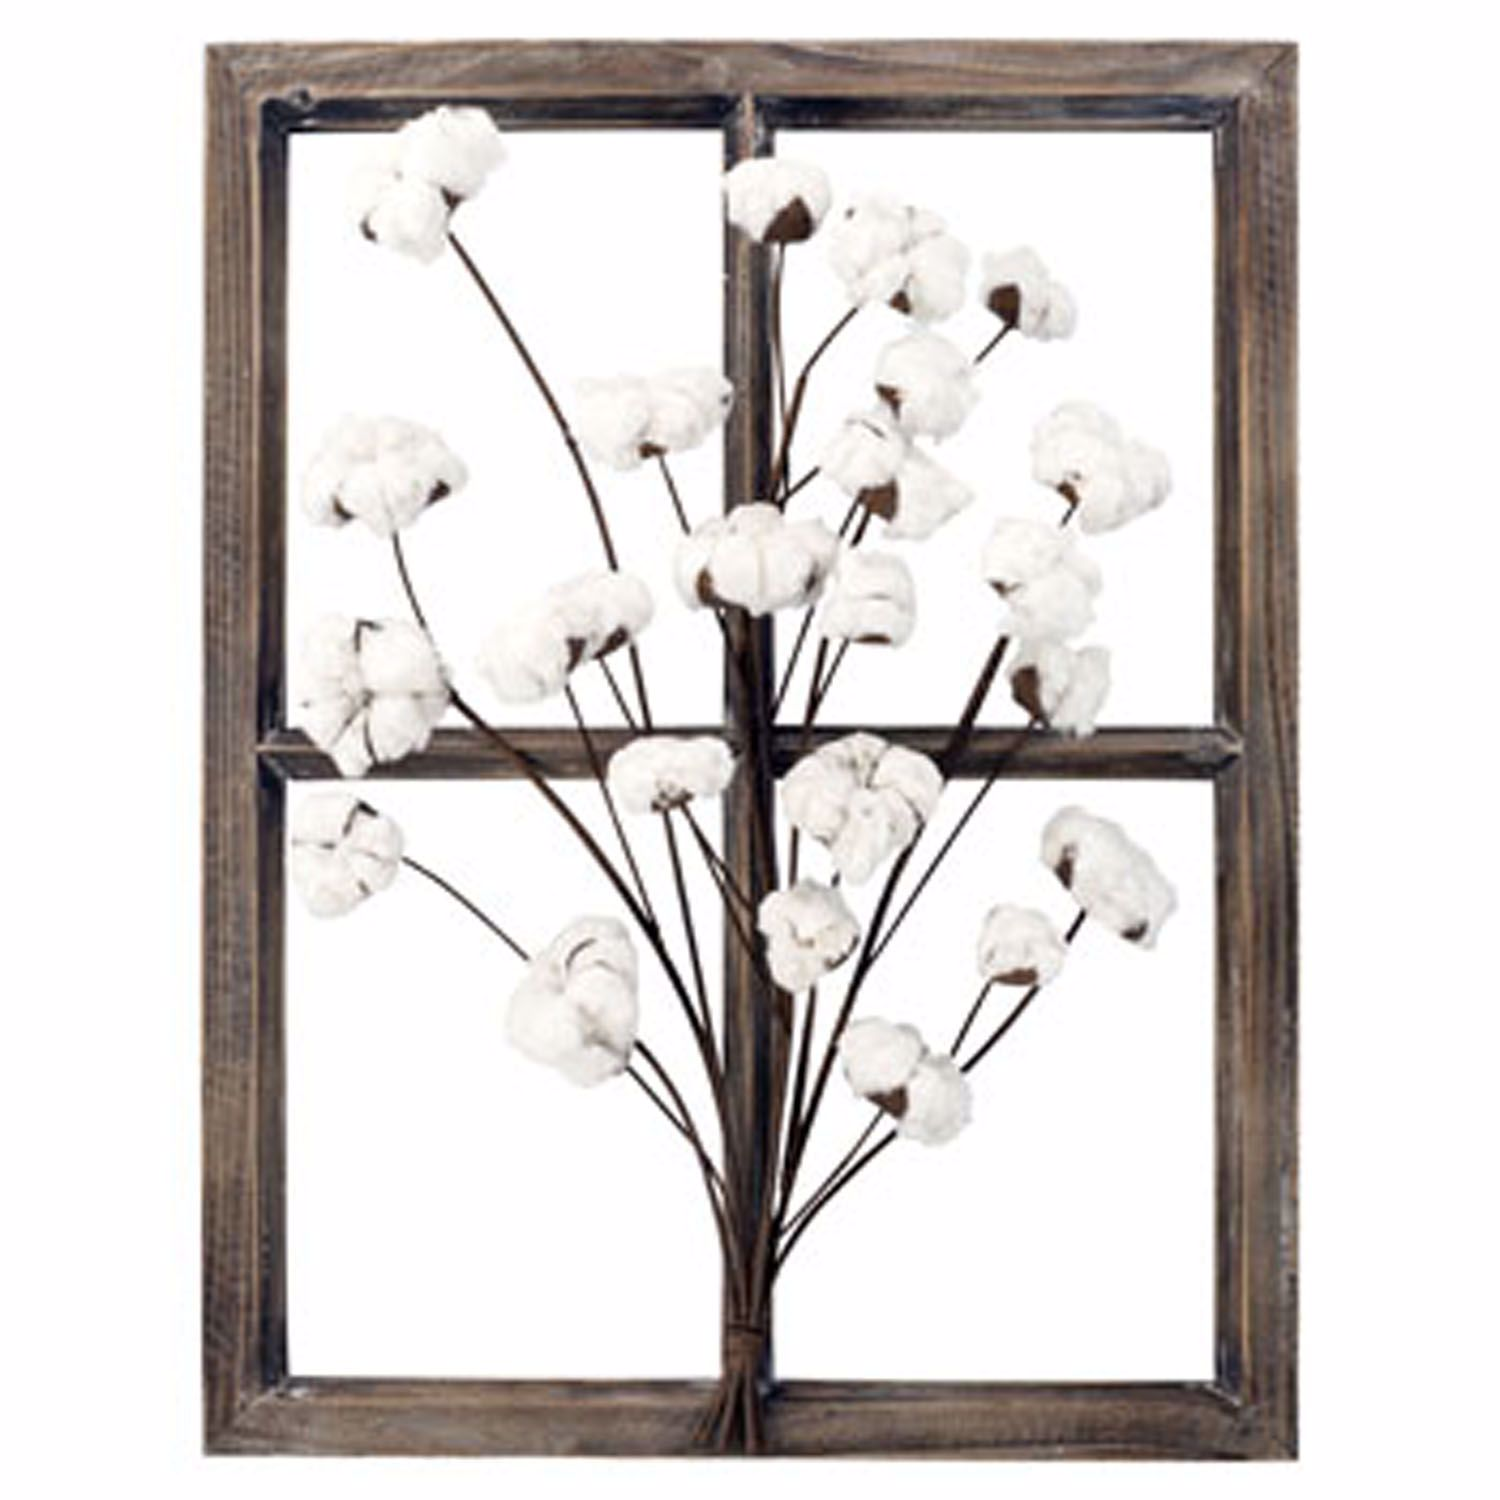 Picture of Branches in Window Wall Decor